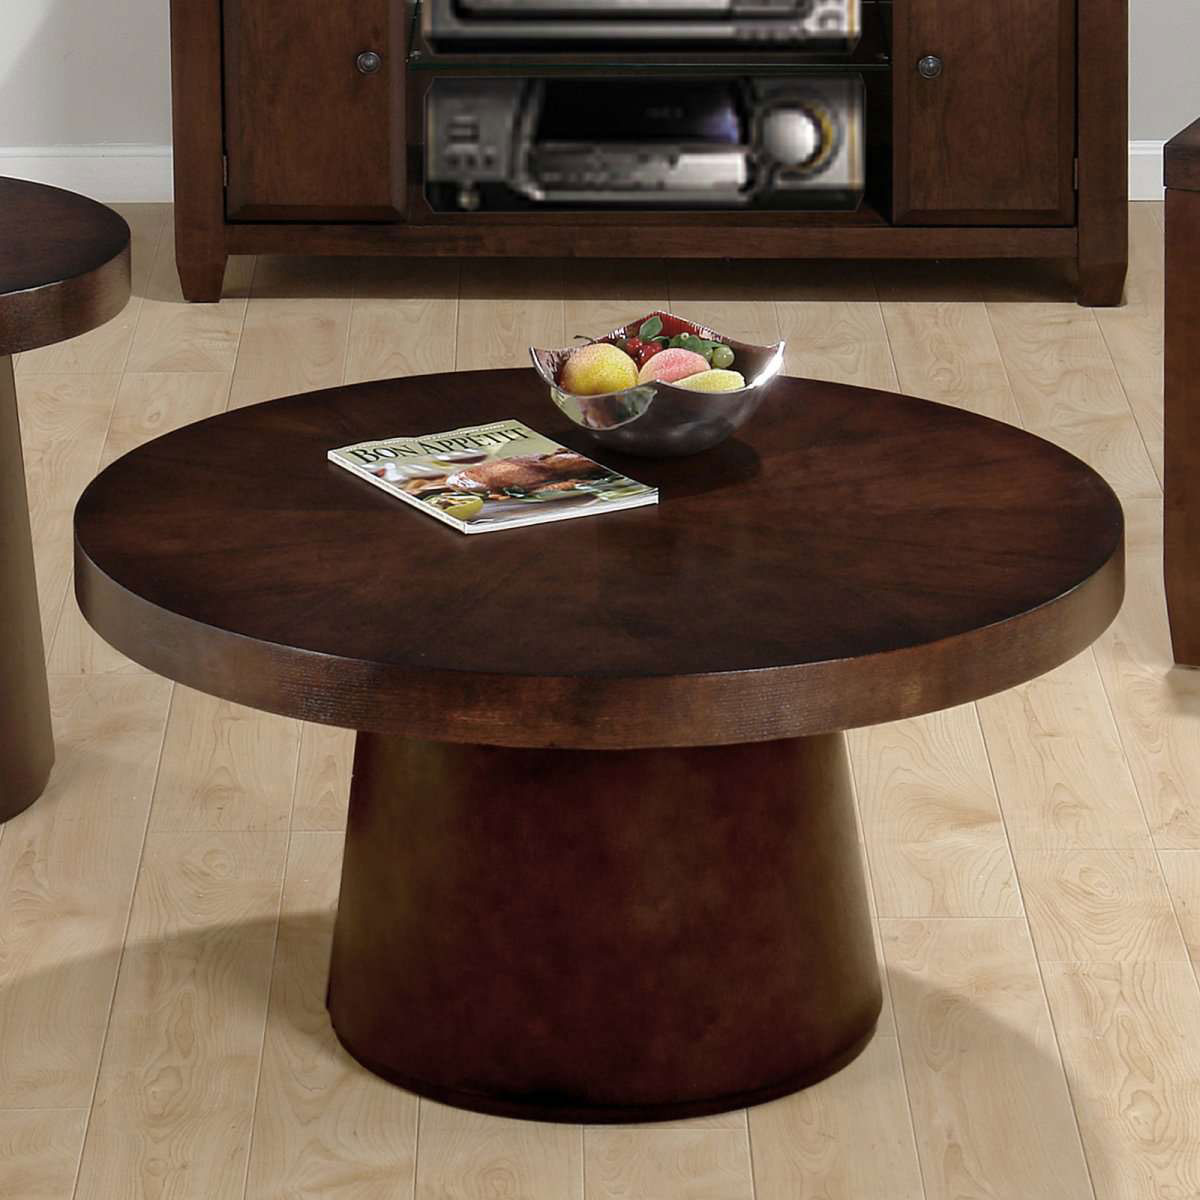 Small Round Coffee Tables Futuristic Kitchen Design Contemporary Ideas Living Room Furniture Black Wood Round Coffee Table (Image 9 of 10)